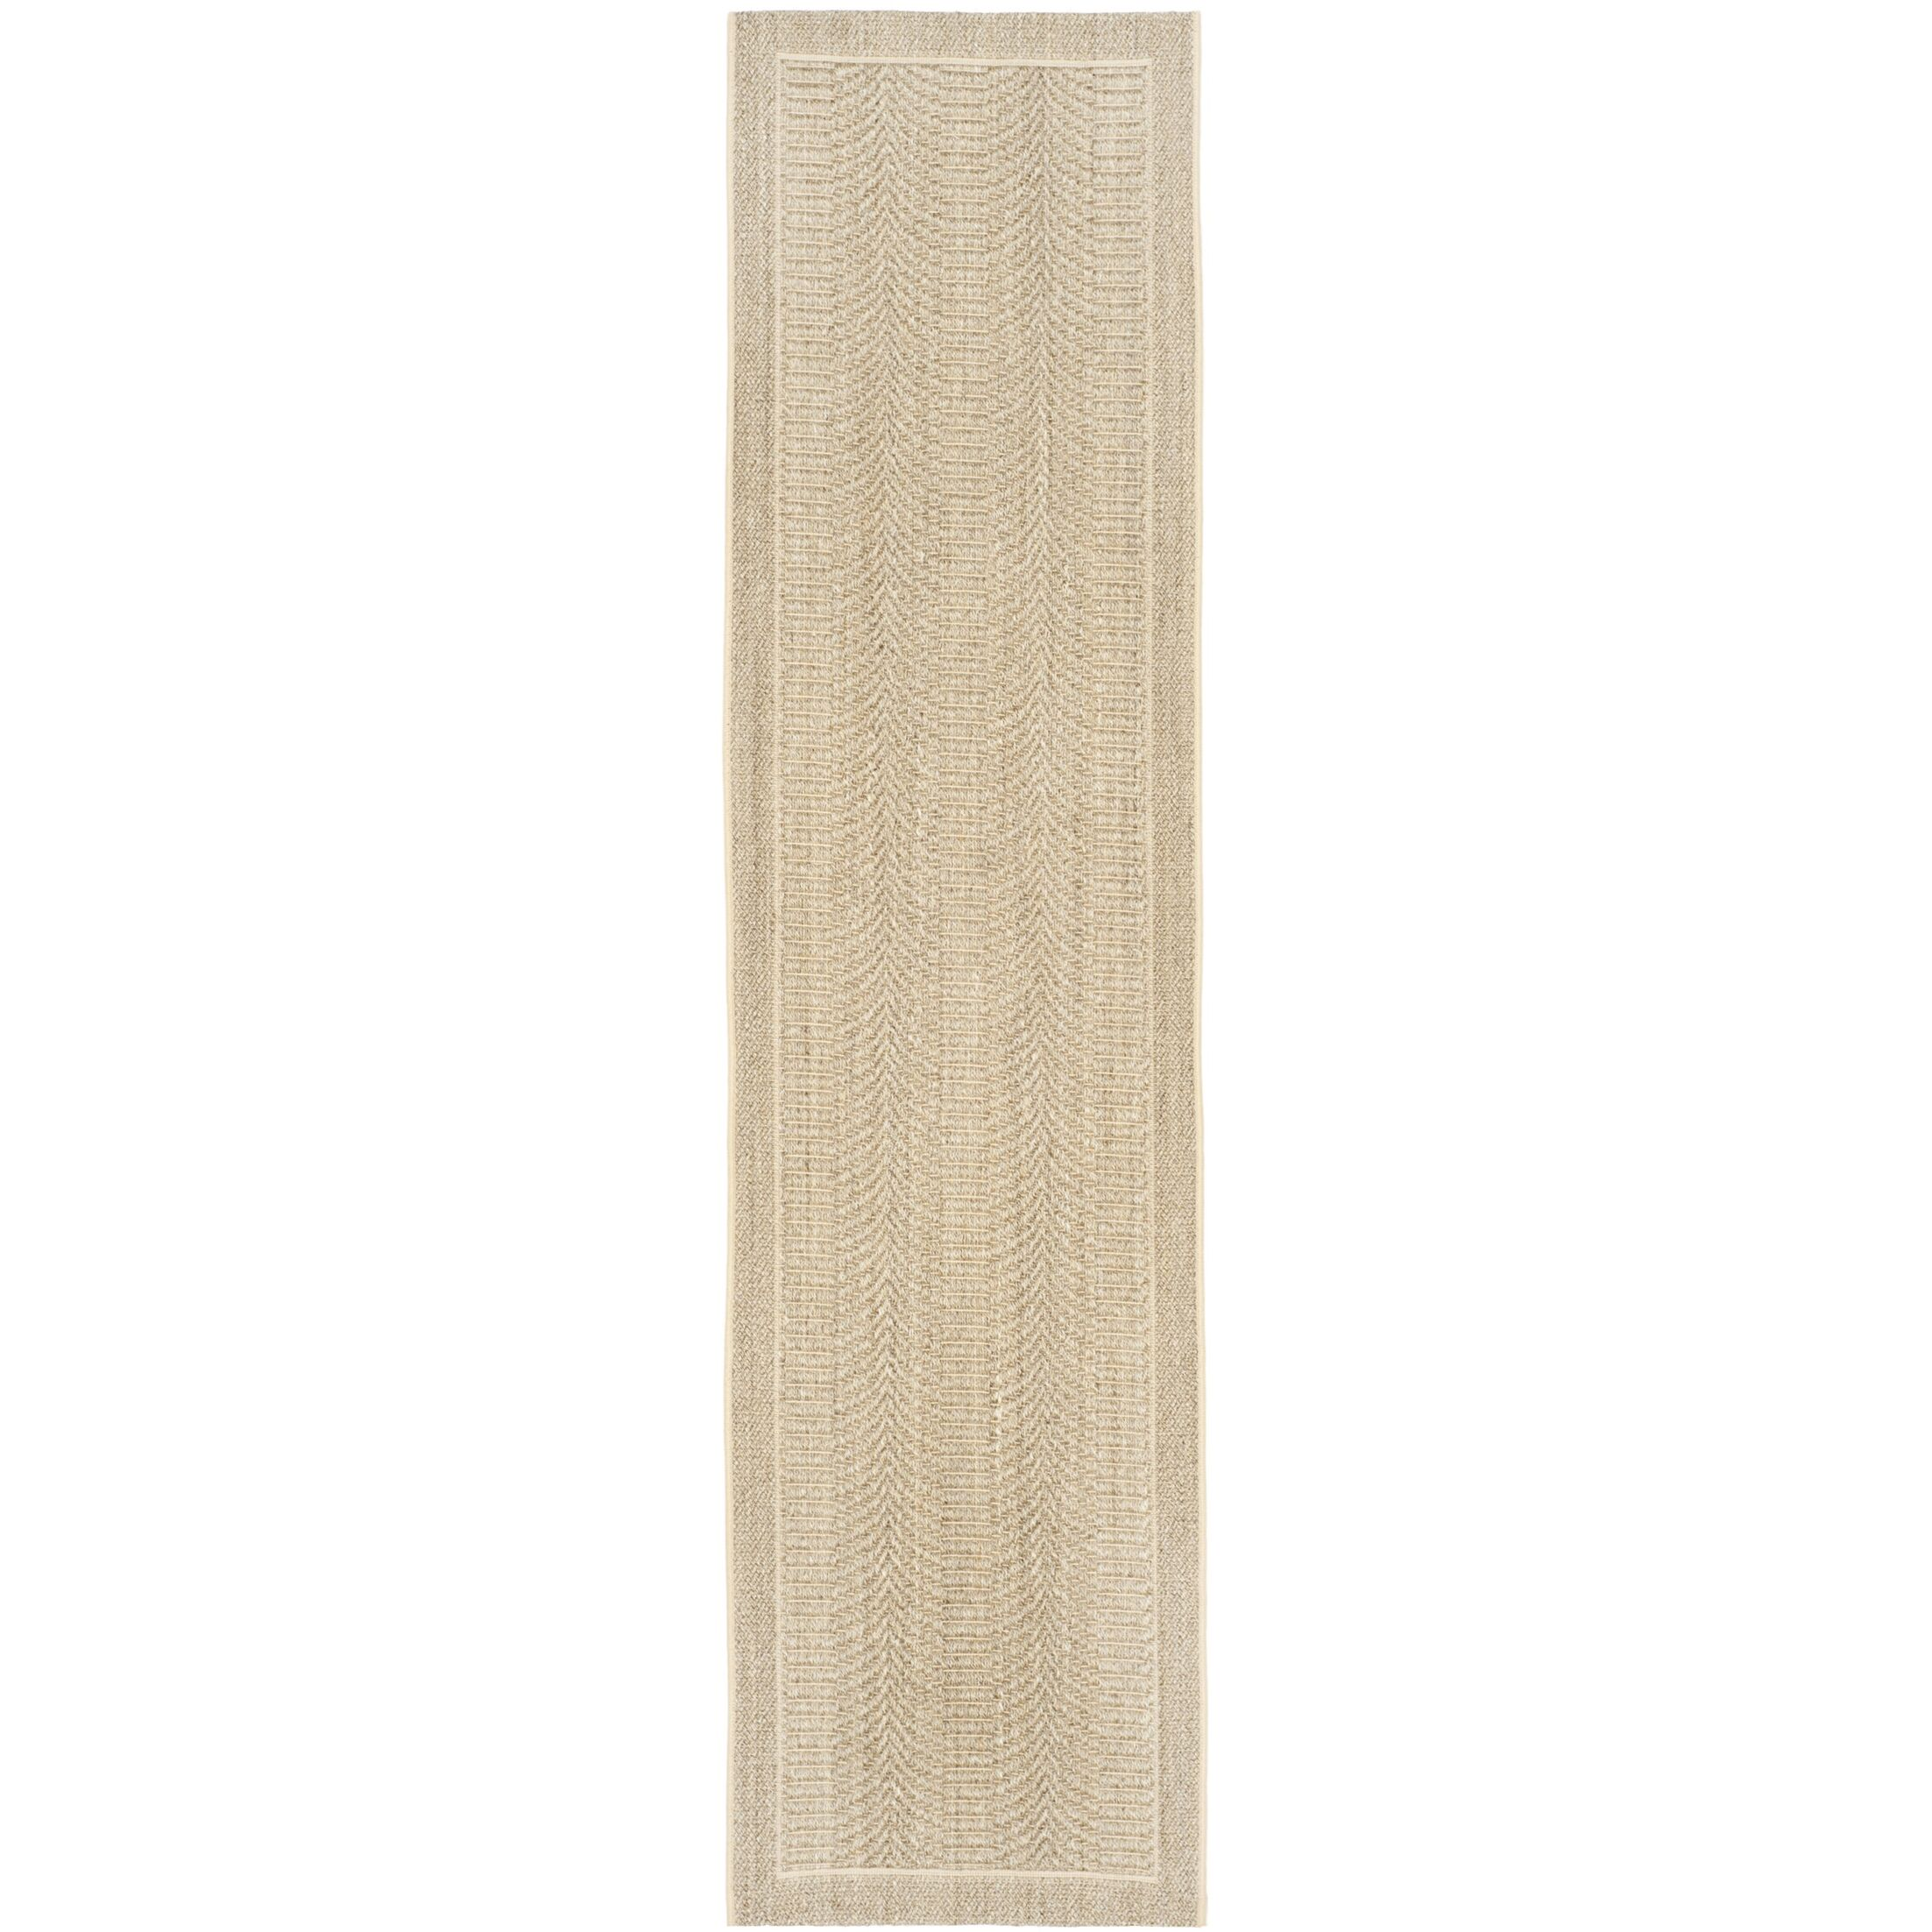 Rodanthe Desert Sand Solid Area Rug Rug Size: Rectangle 3' x 5'